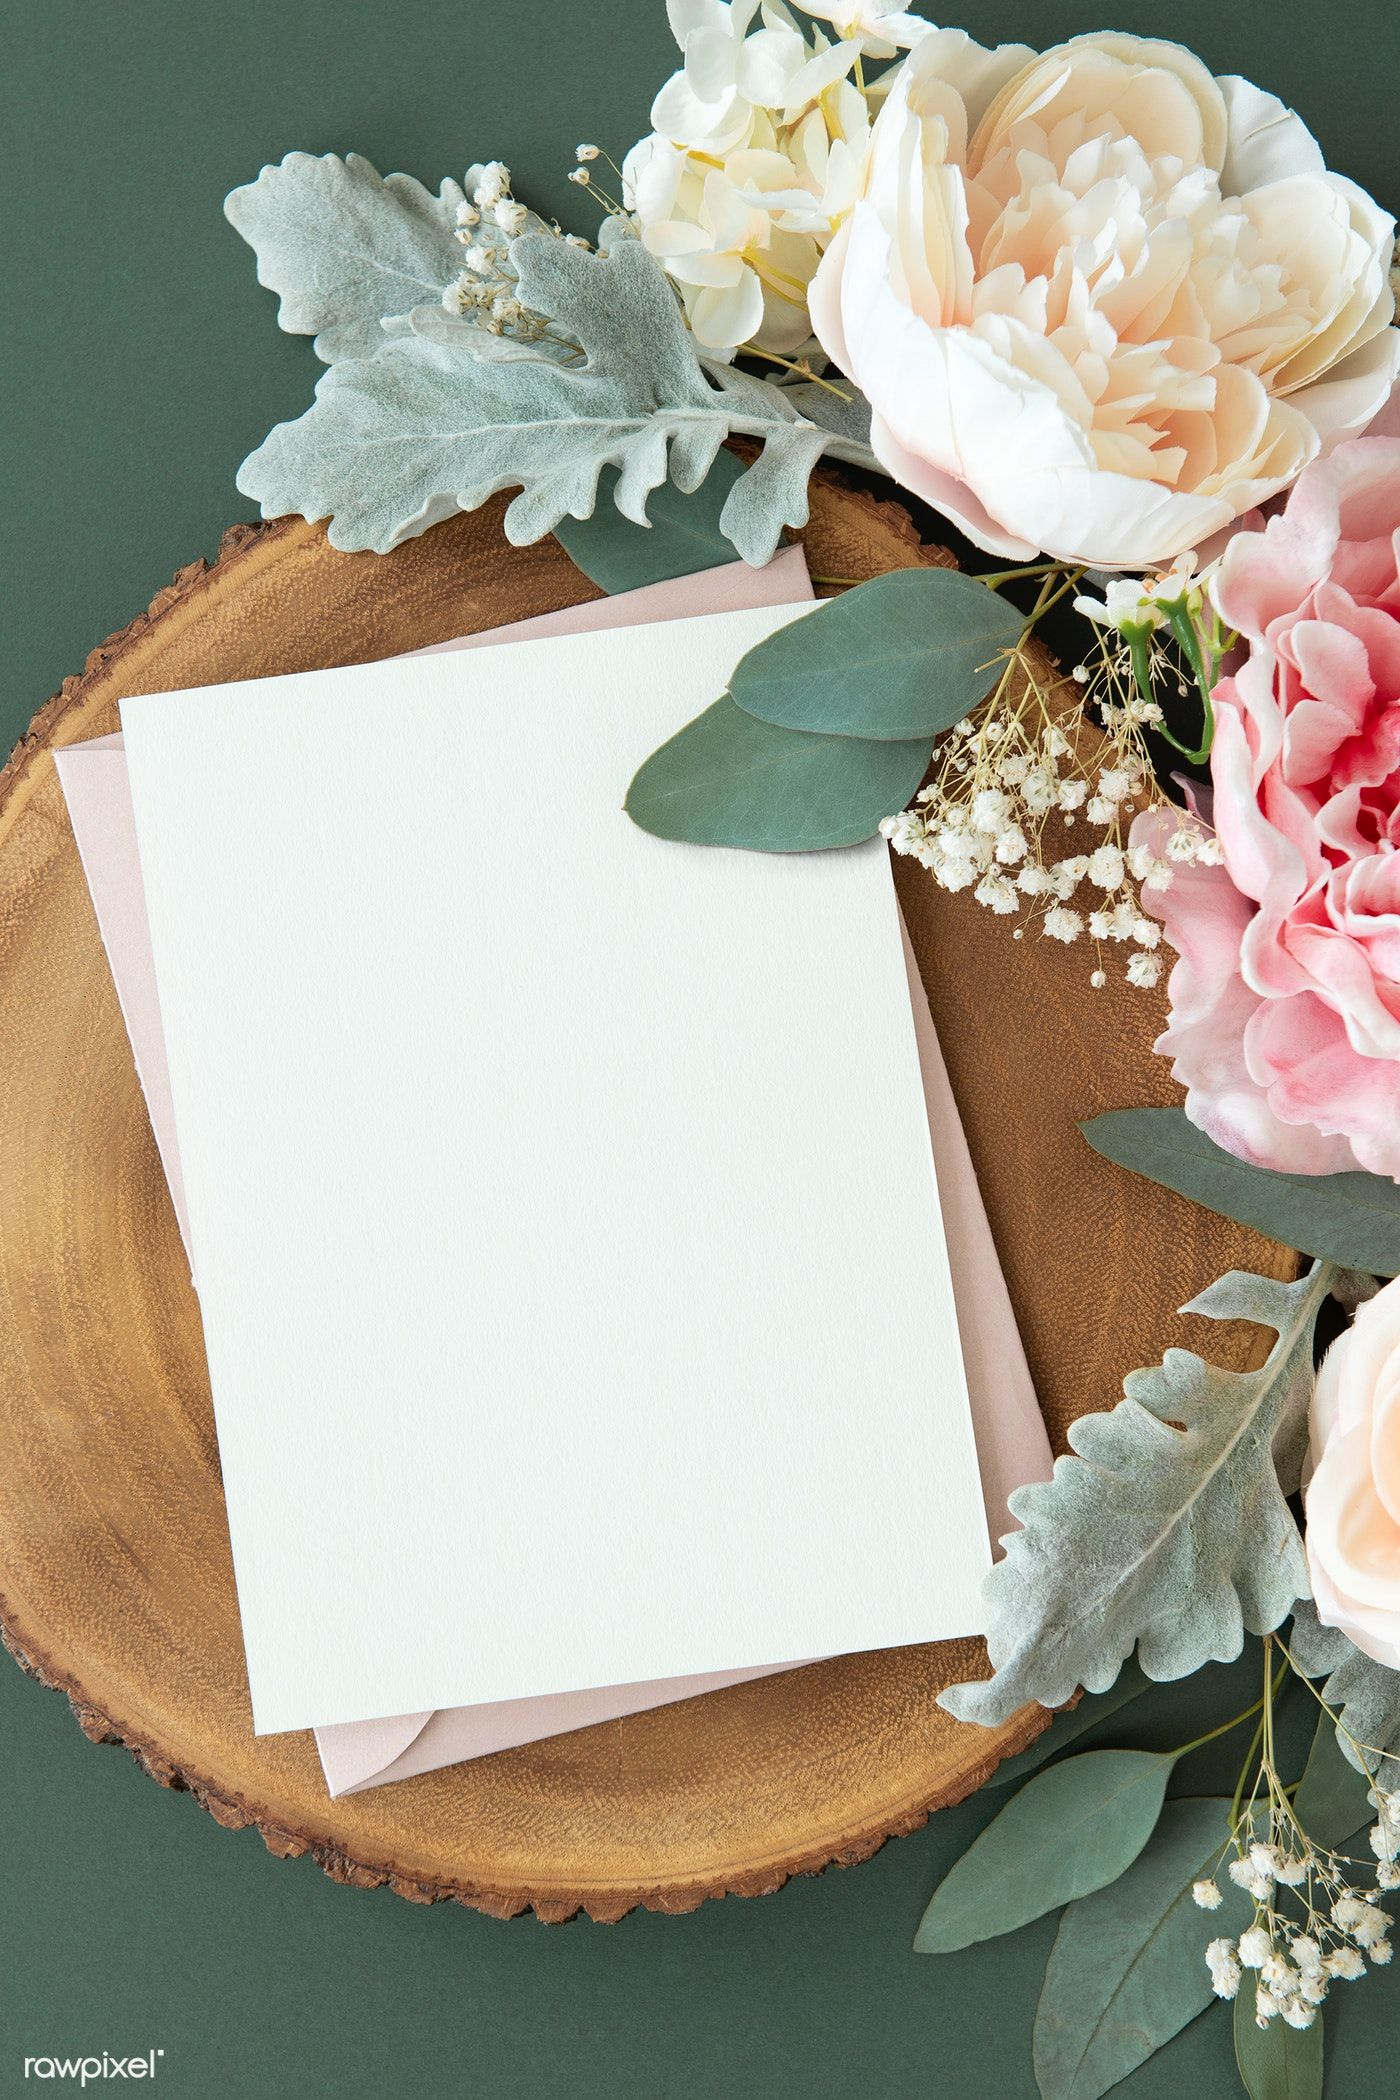 Download Premium Psd Of Blank White Card Template Mockup And Roses 1204247 Floral Poster Flower Background Wallpaper Instagram Frame